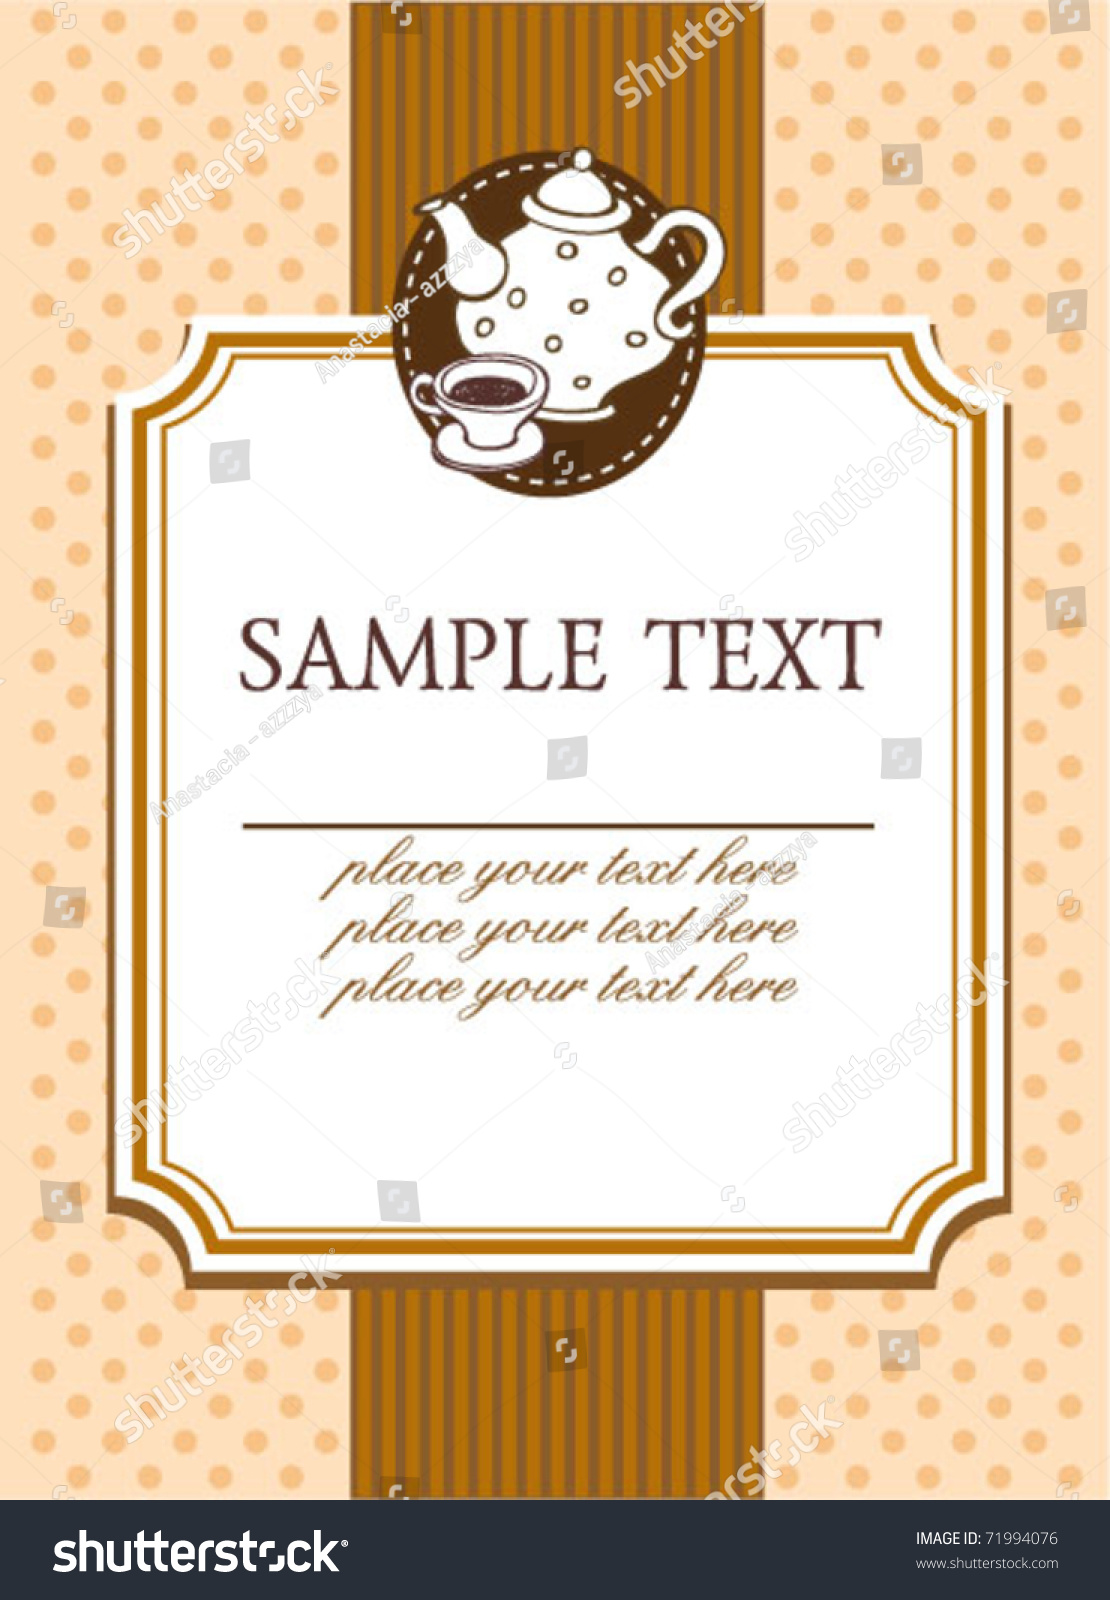 Cafe Menu Template Place Sample Text Vector 71994076 – Sample Cafe Menu Template